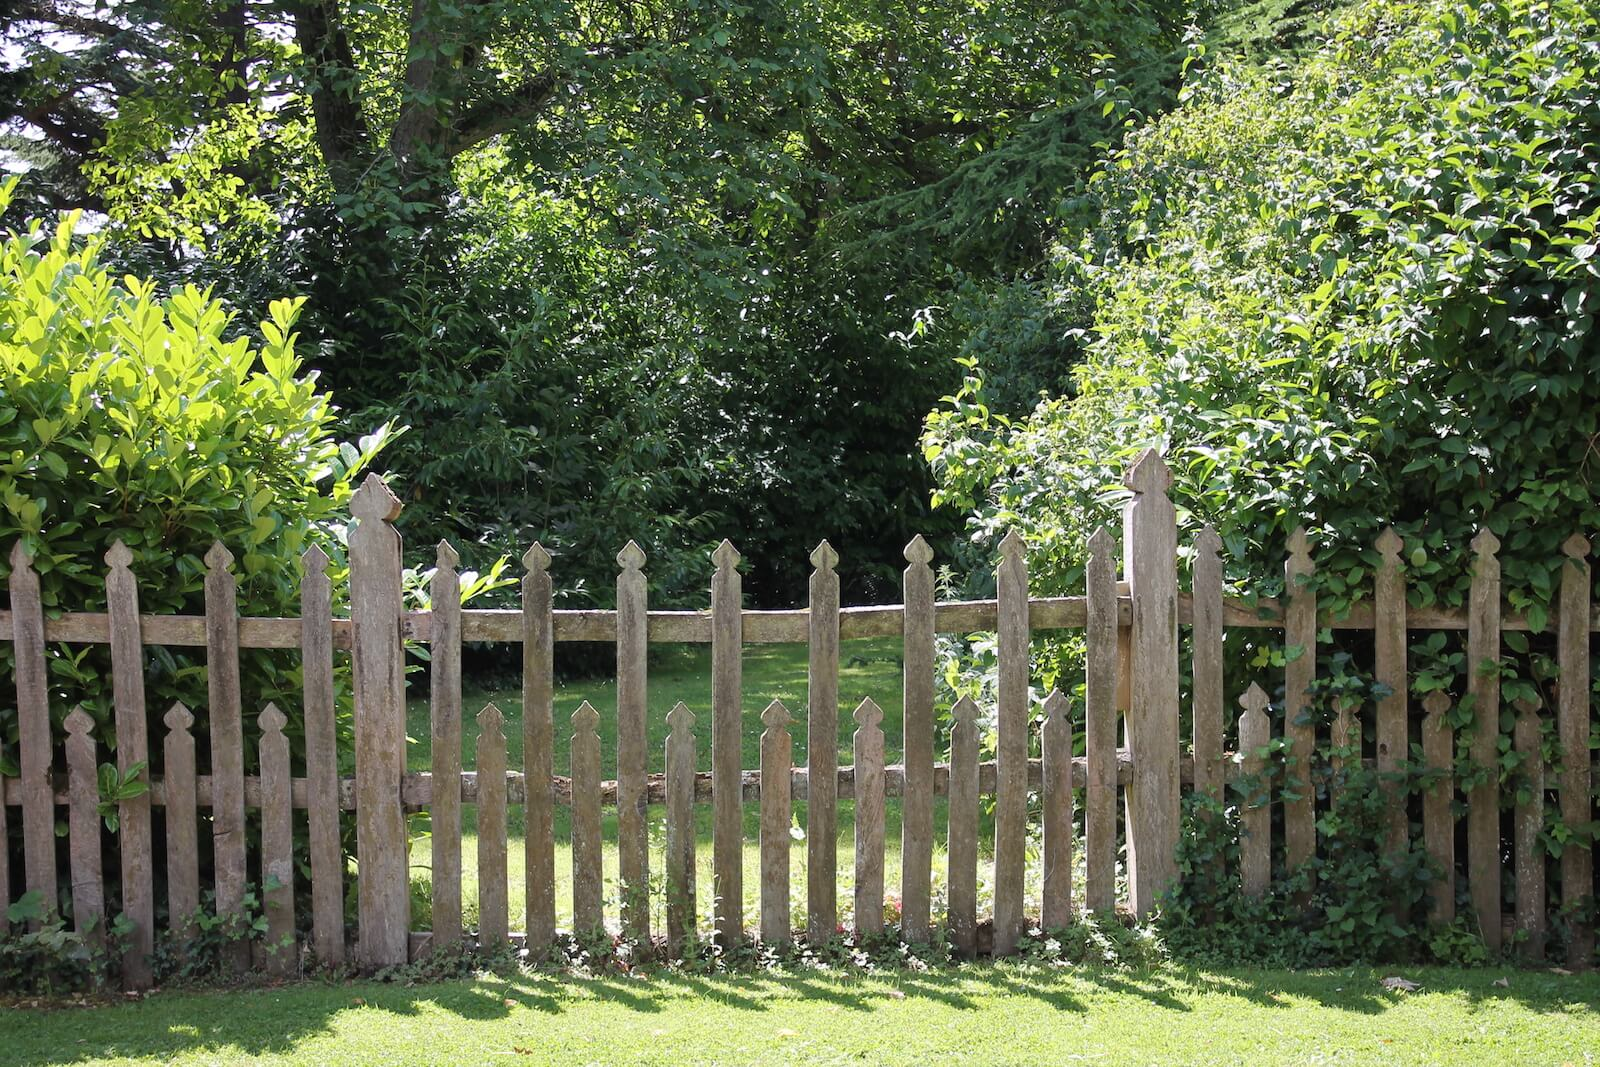 An English country garden fence, here's how you can make your outdoor space bright and beautiful this summer.